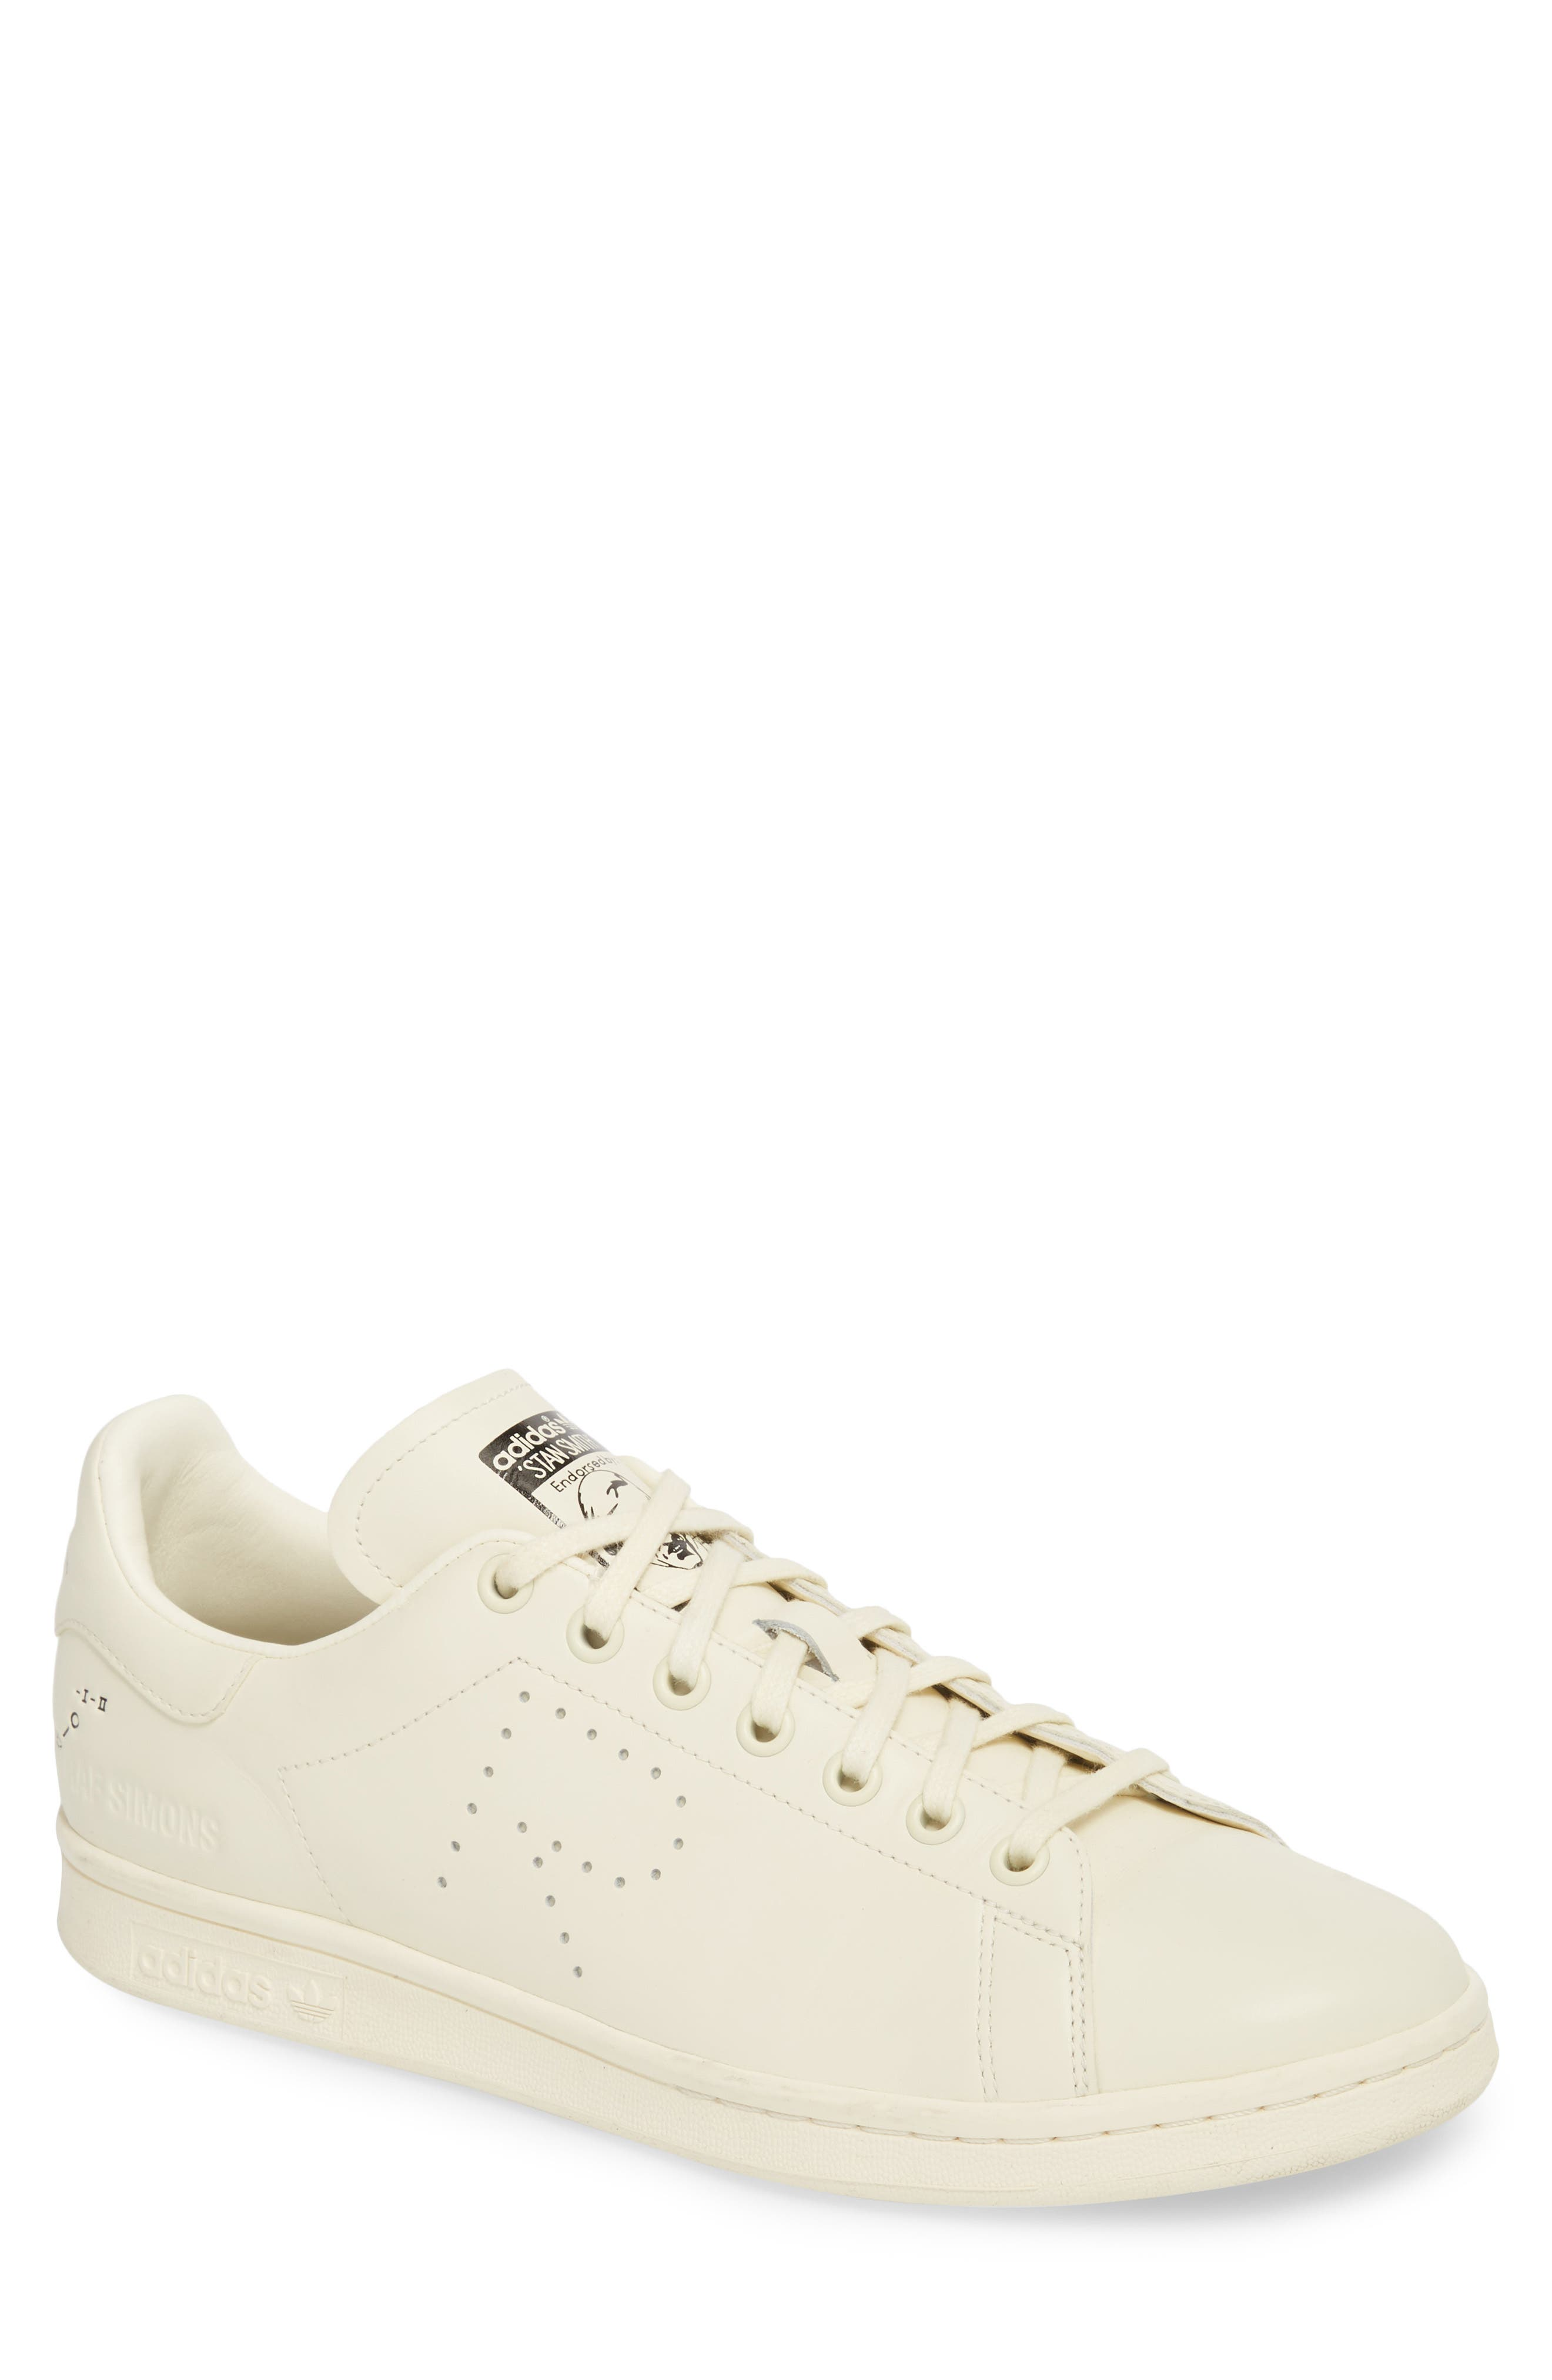 adidas by Raf Simons 'Stan Smith' Sneaker,                             Main thumbnail 1, color,                             151